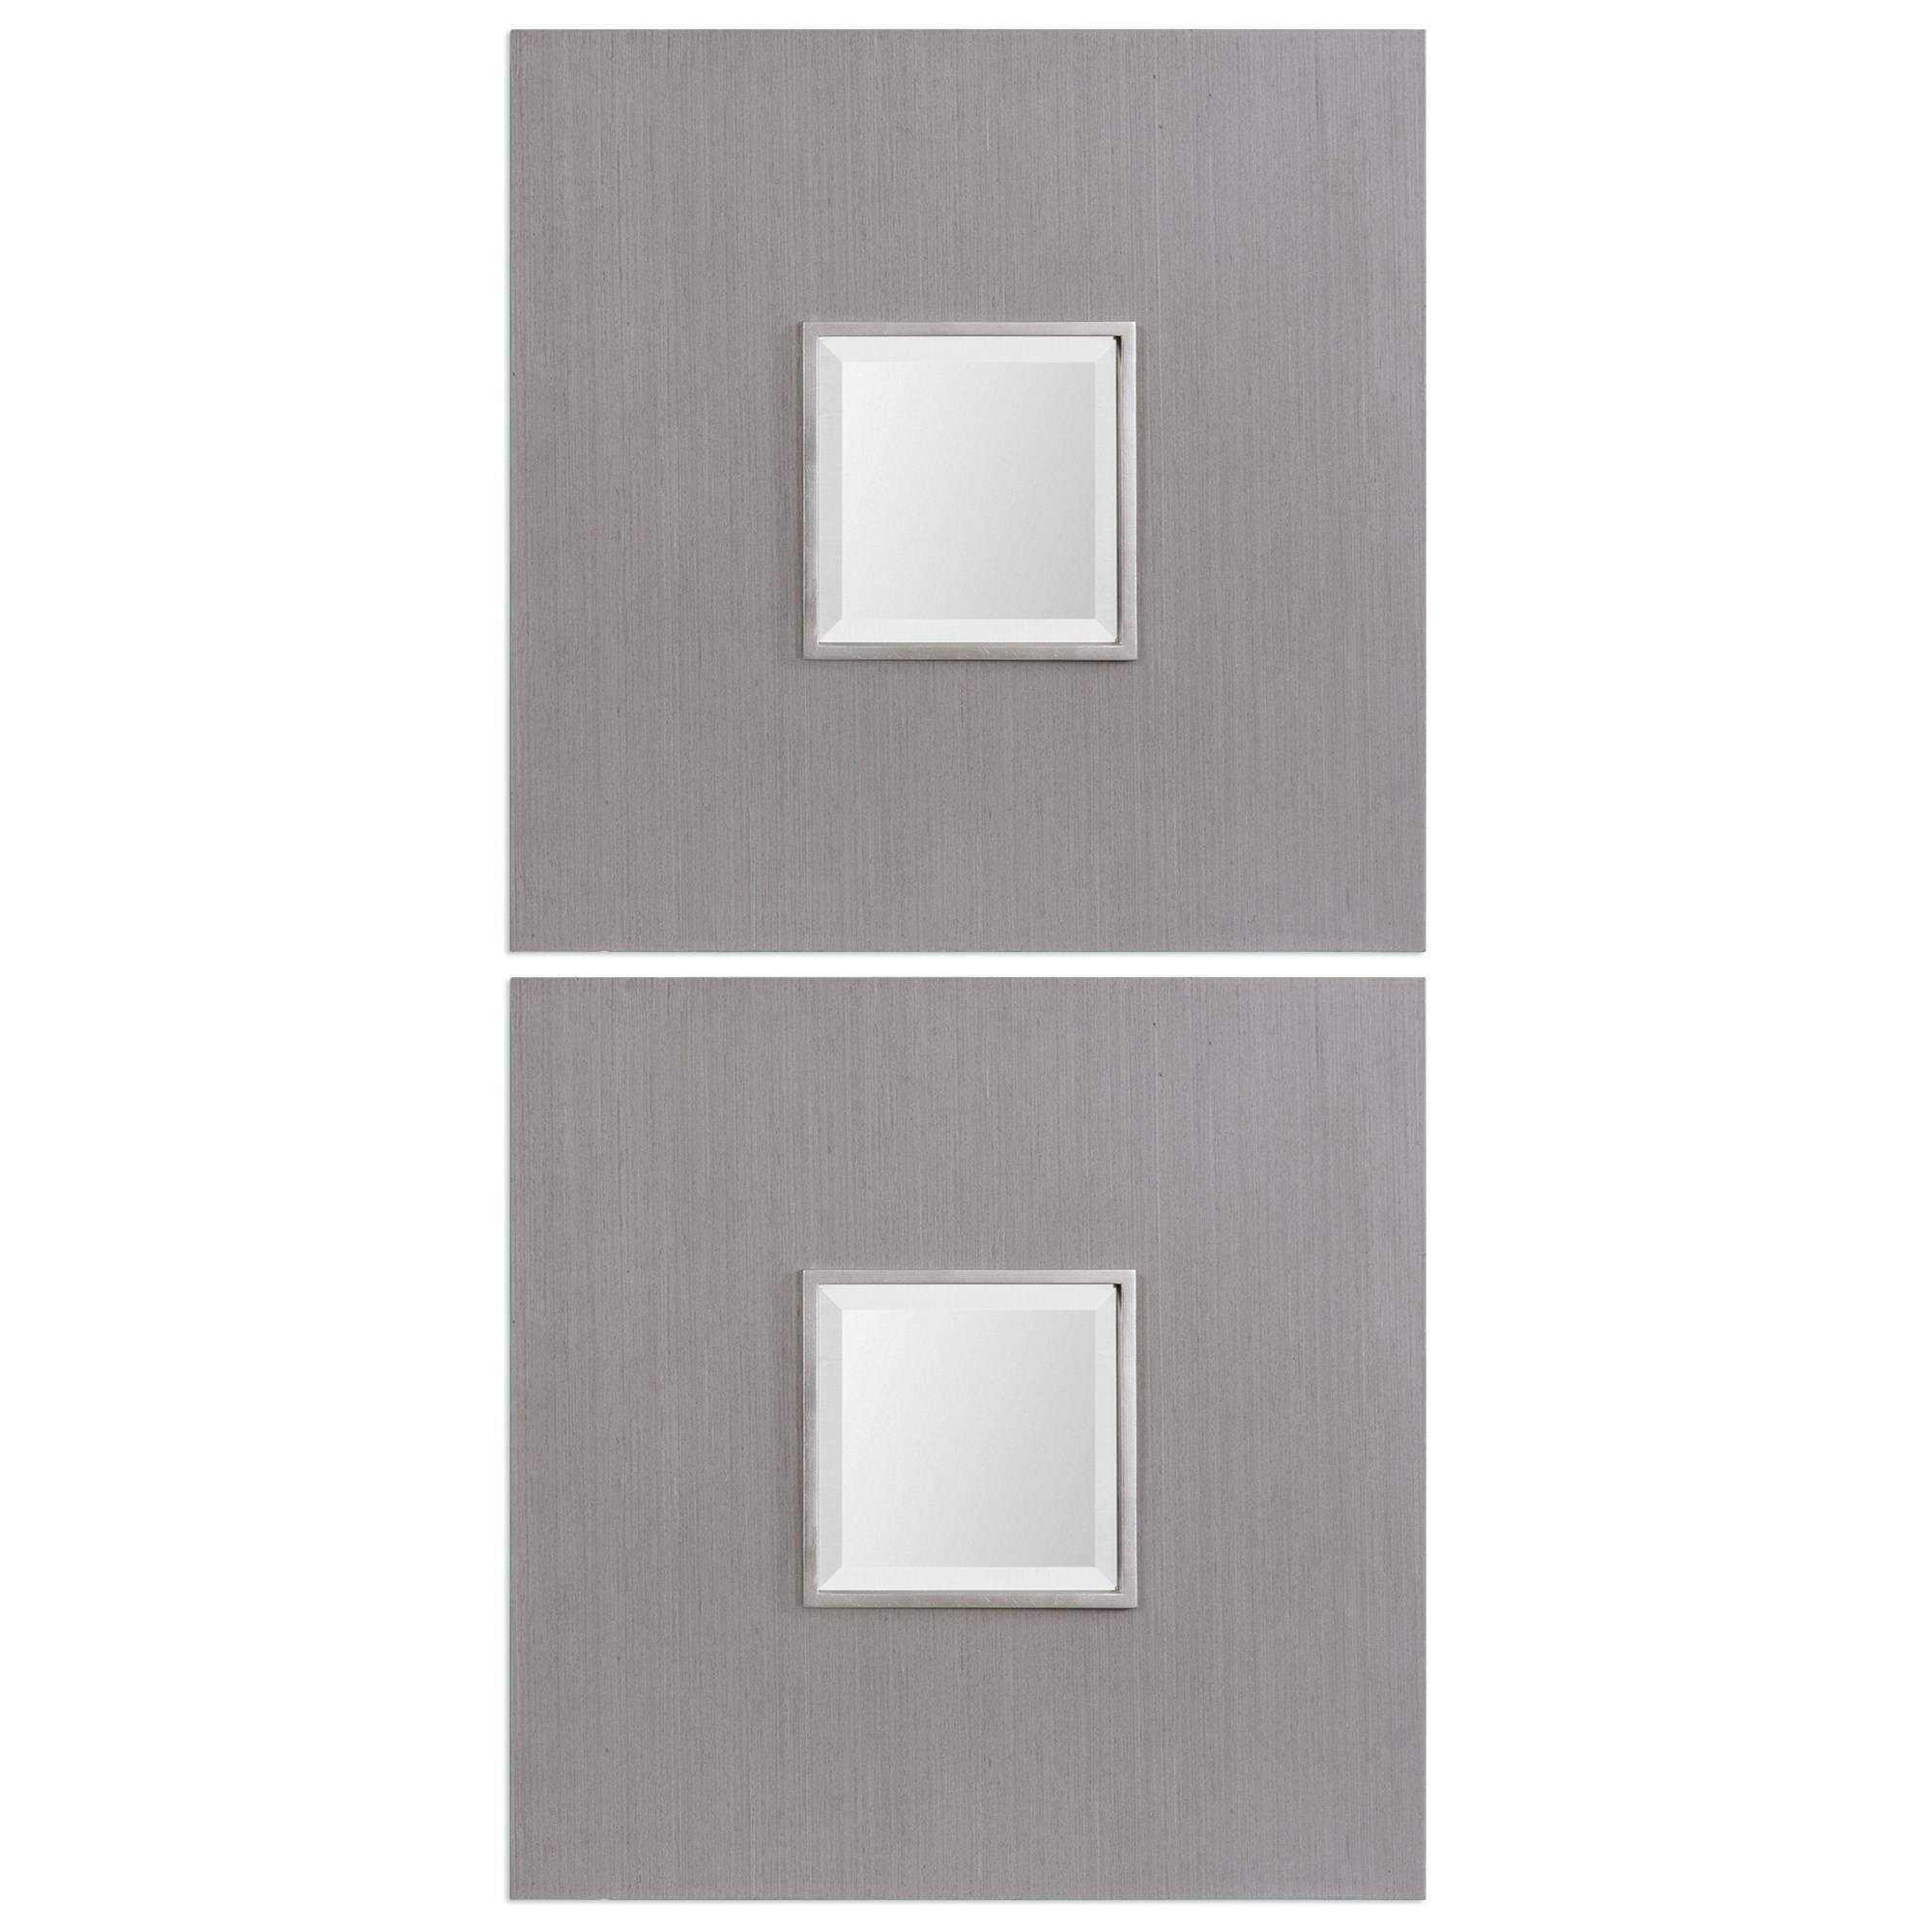 Uttermost Mirrors Scotten Squares (Set of 2) - Item Number: 09165